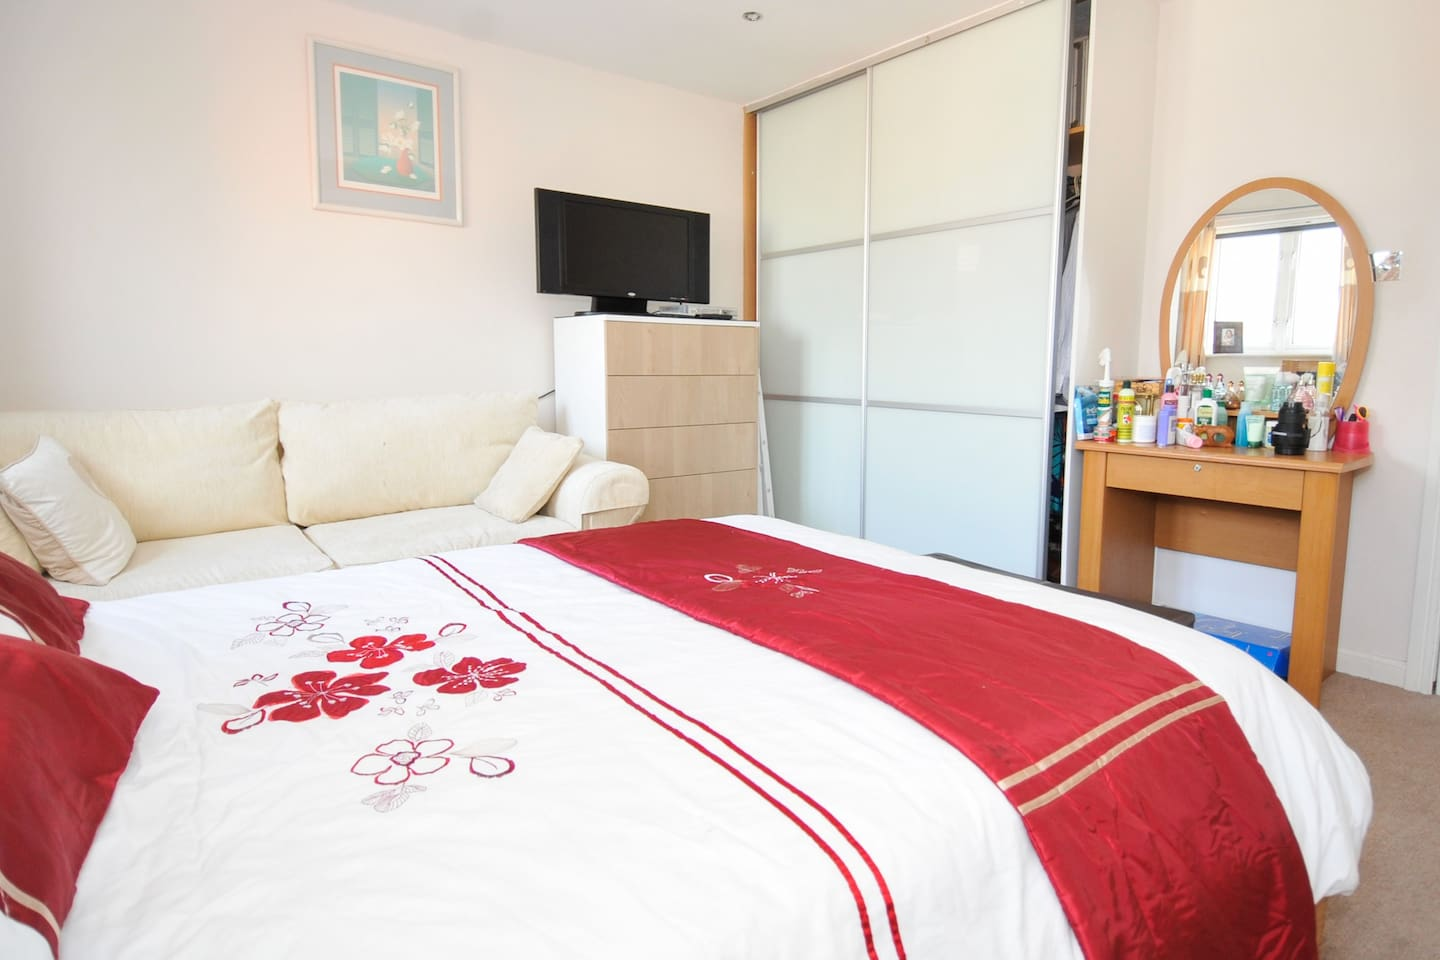 Large Executive Bedroom with en-suite facilities + Free use of Jacuzzi  GBP 70.00 / Nigh8liii n